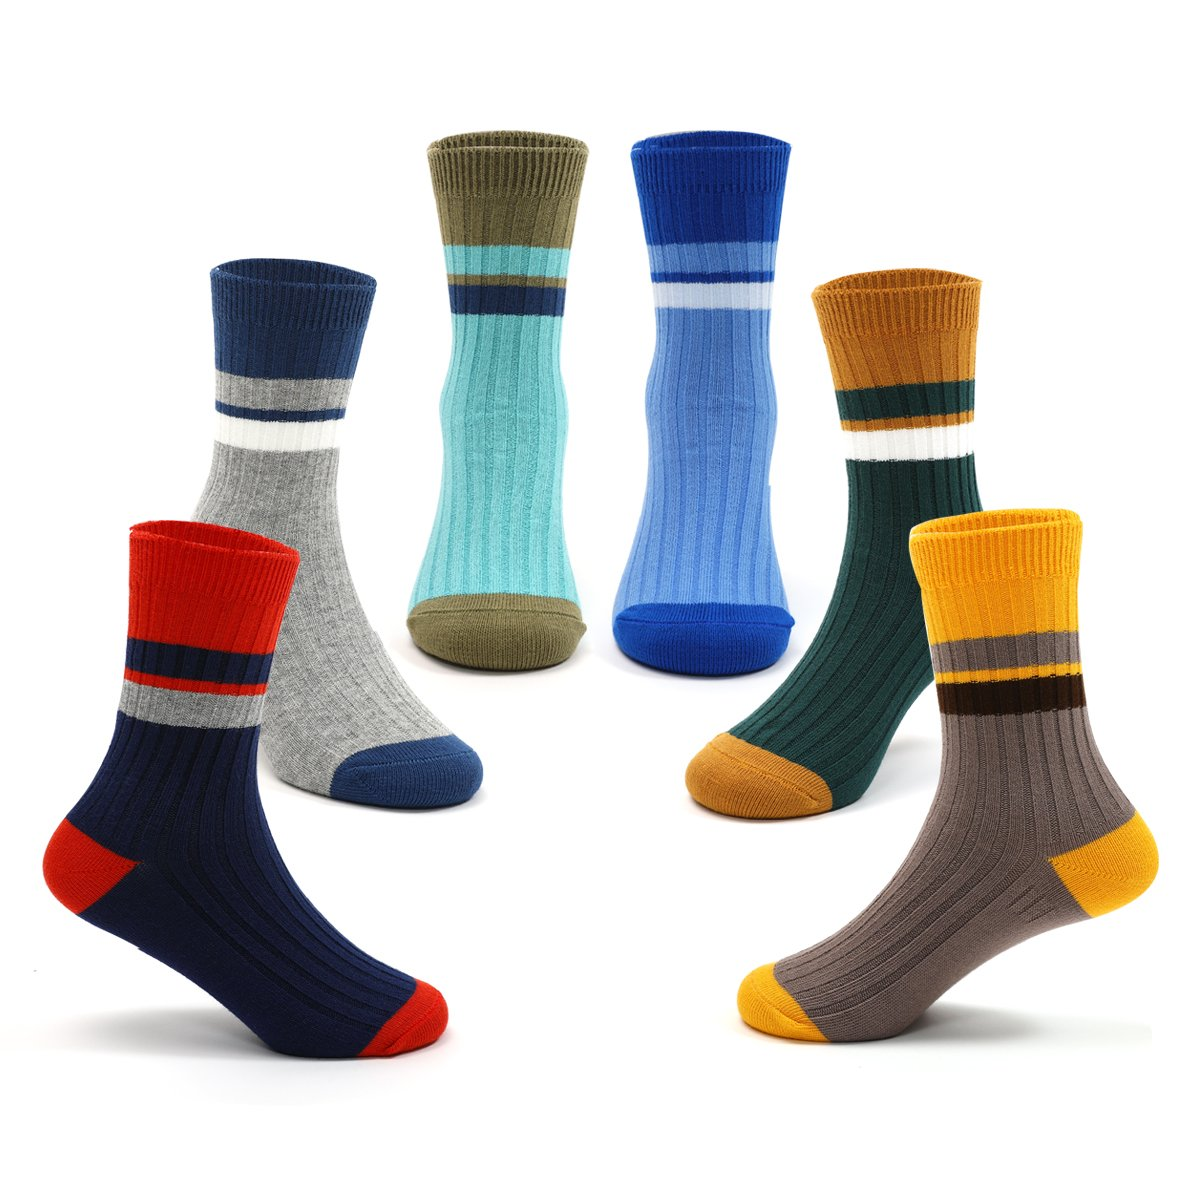 Boys Toddler Cotton Seamless Socks Kids Athletic Crew Socks 6 Pack